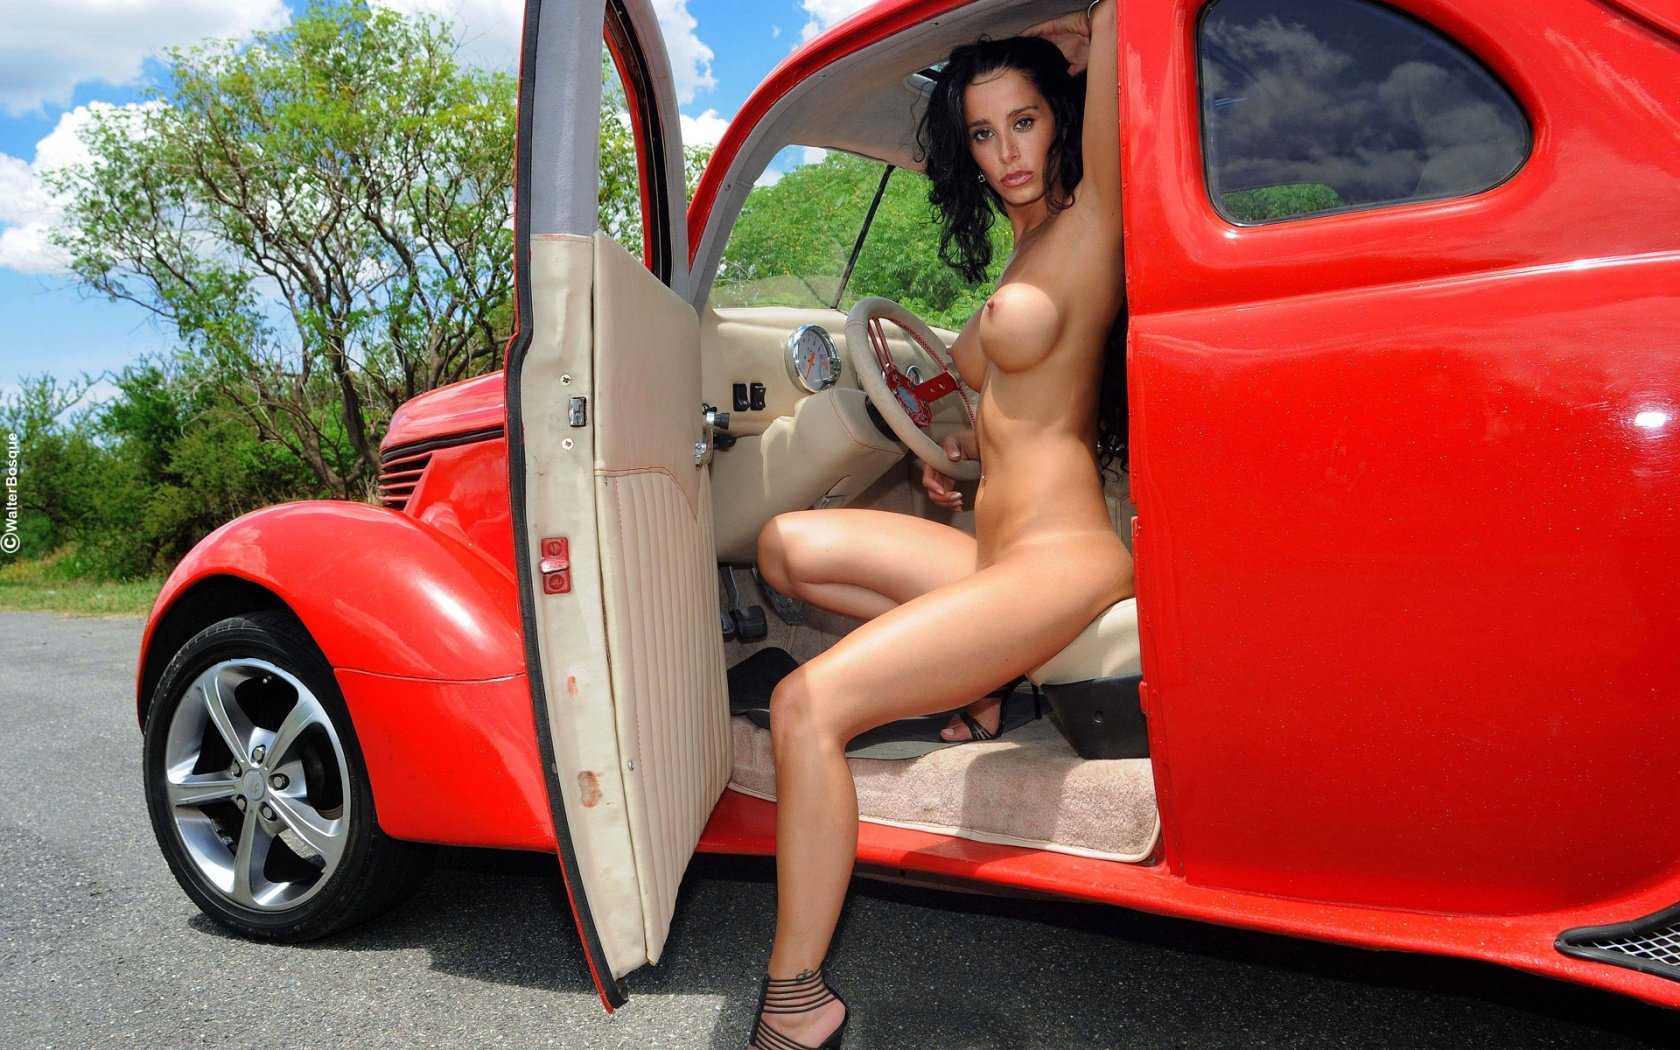 Pics of cars and girls sex